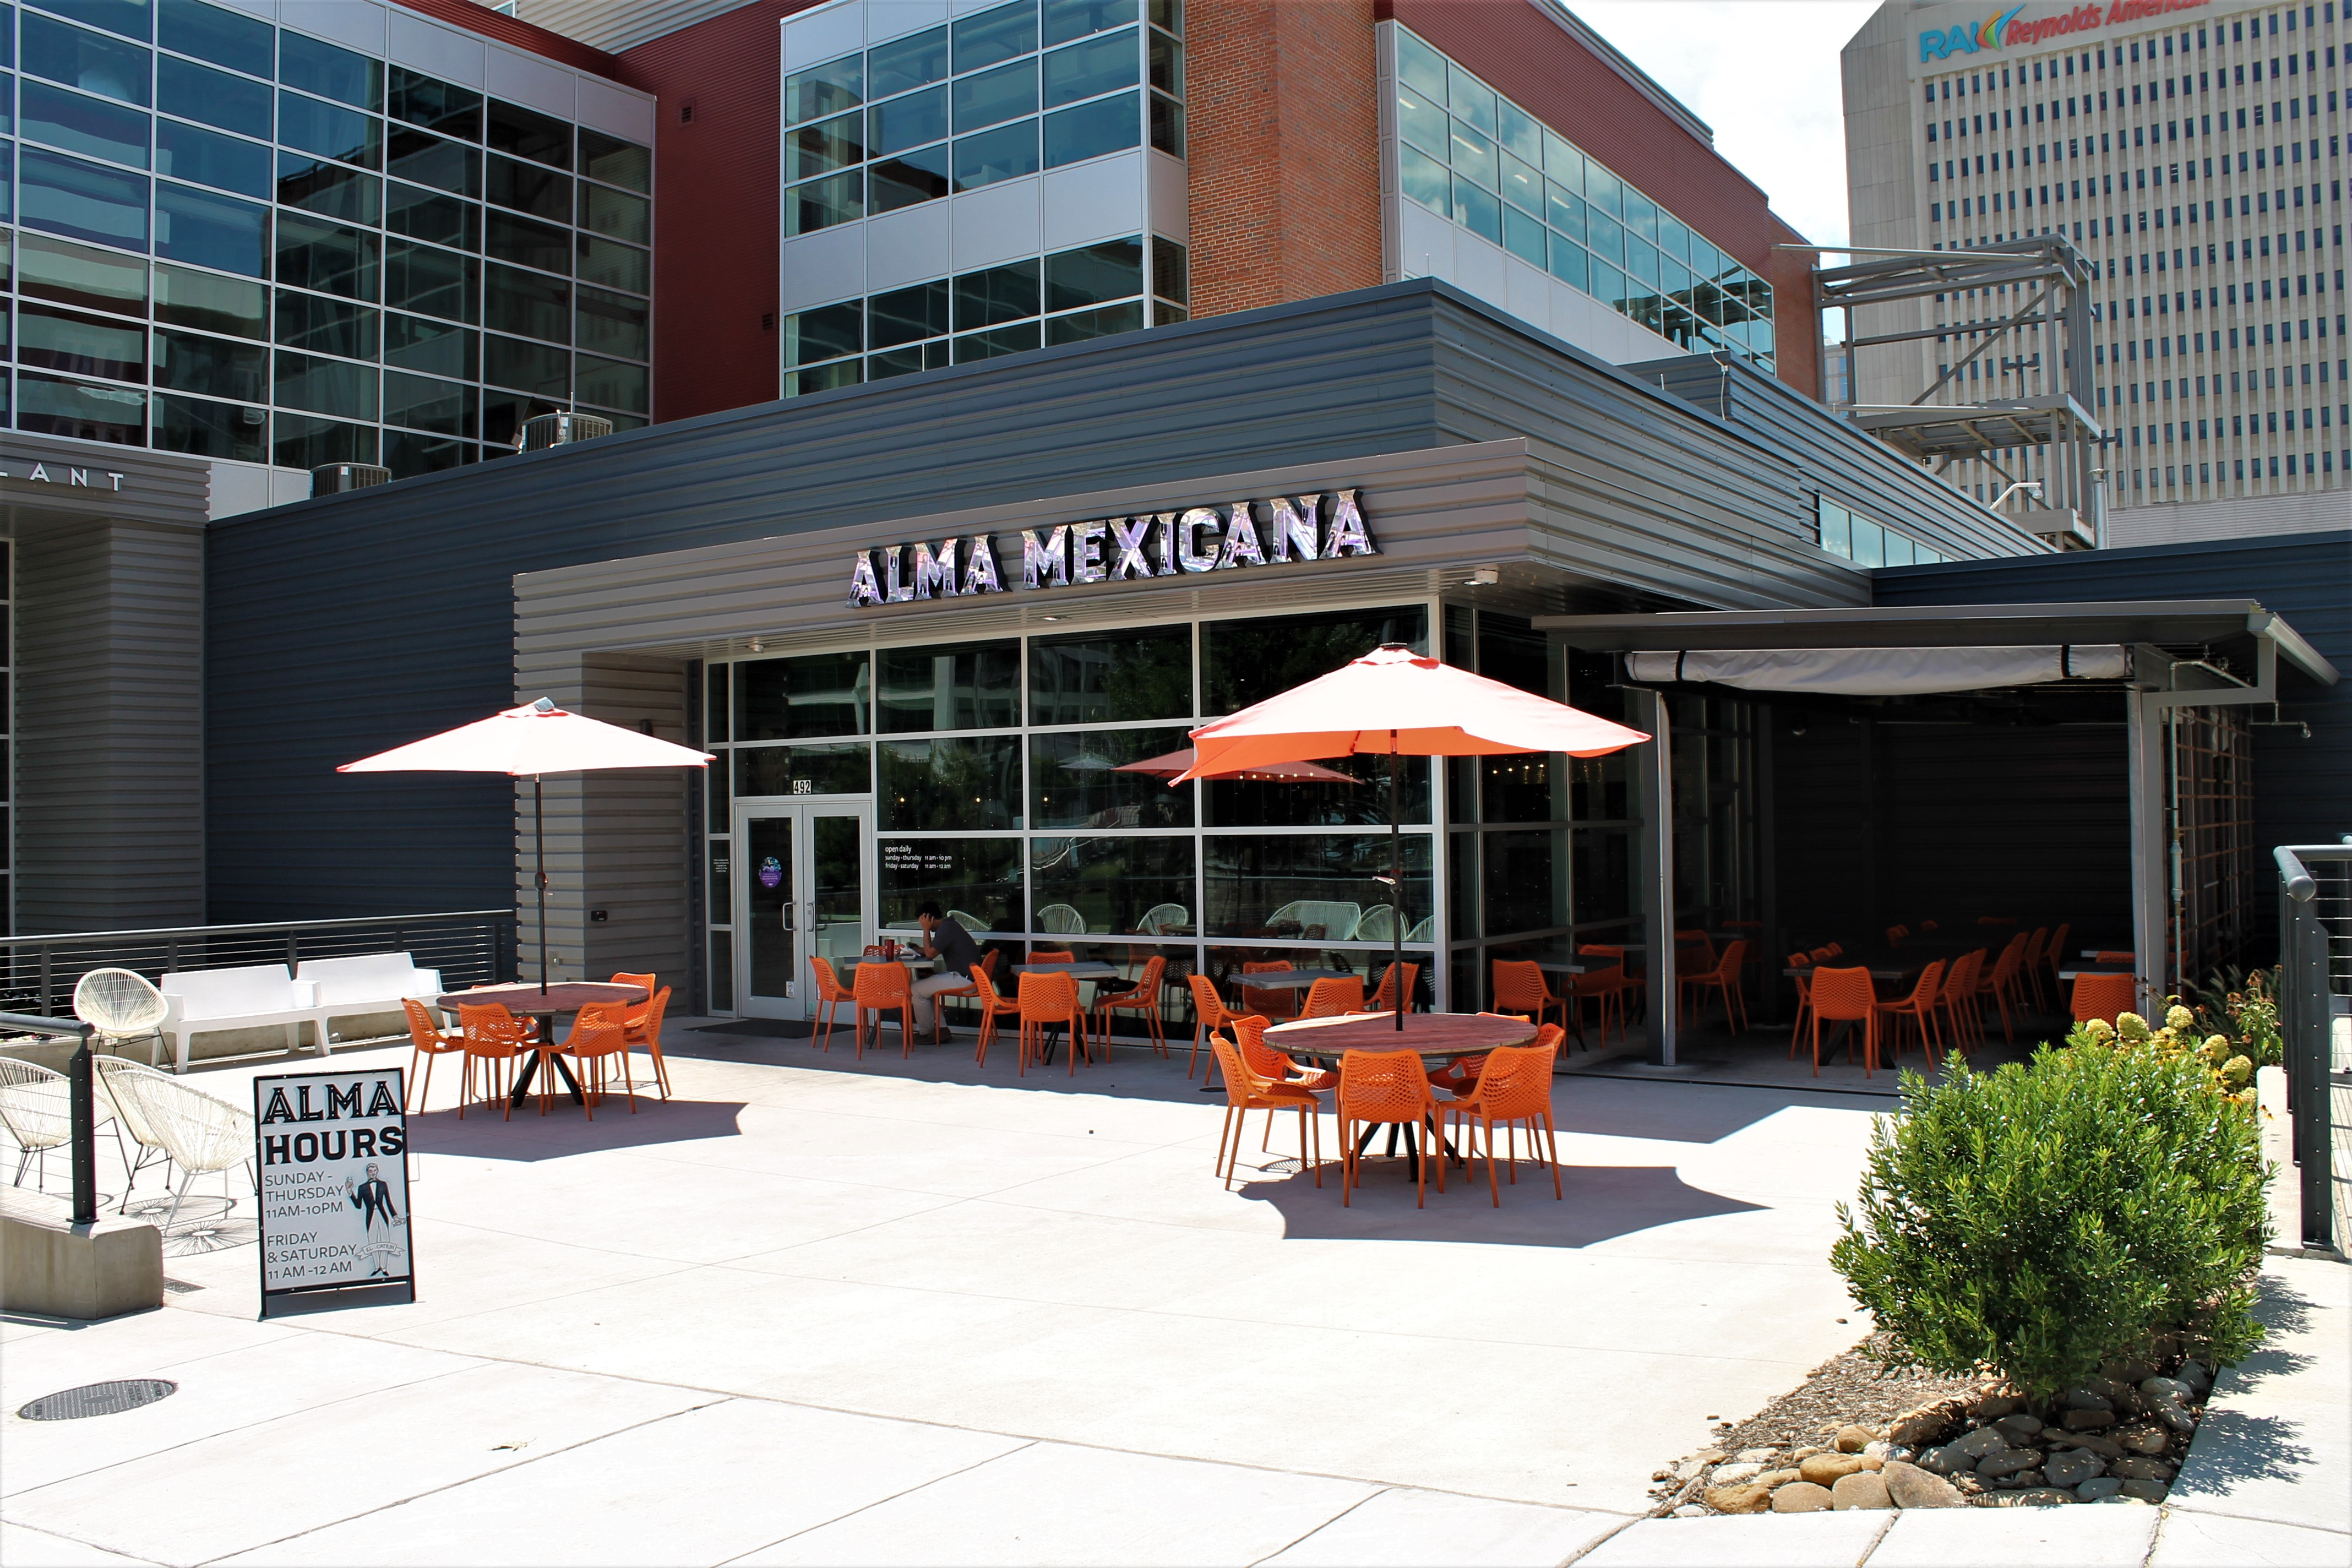 Alma Mexicana Exterior and outdoor seating